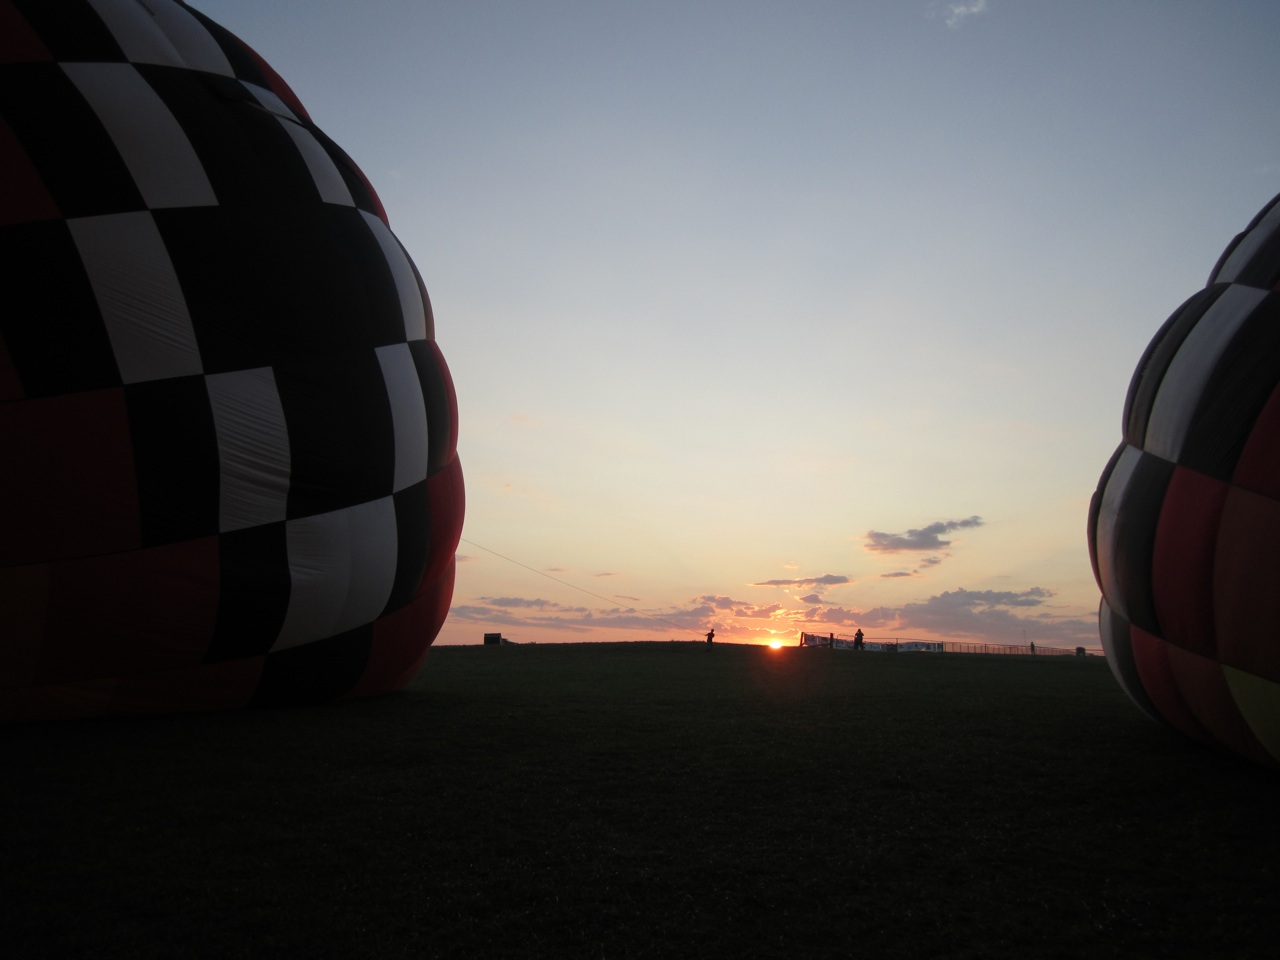 Inflating The Balloons For The Morning Rides